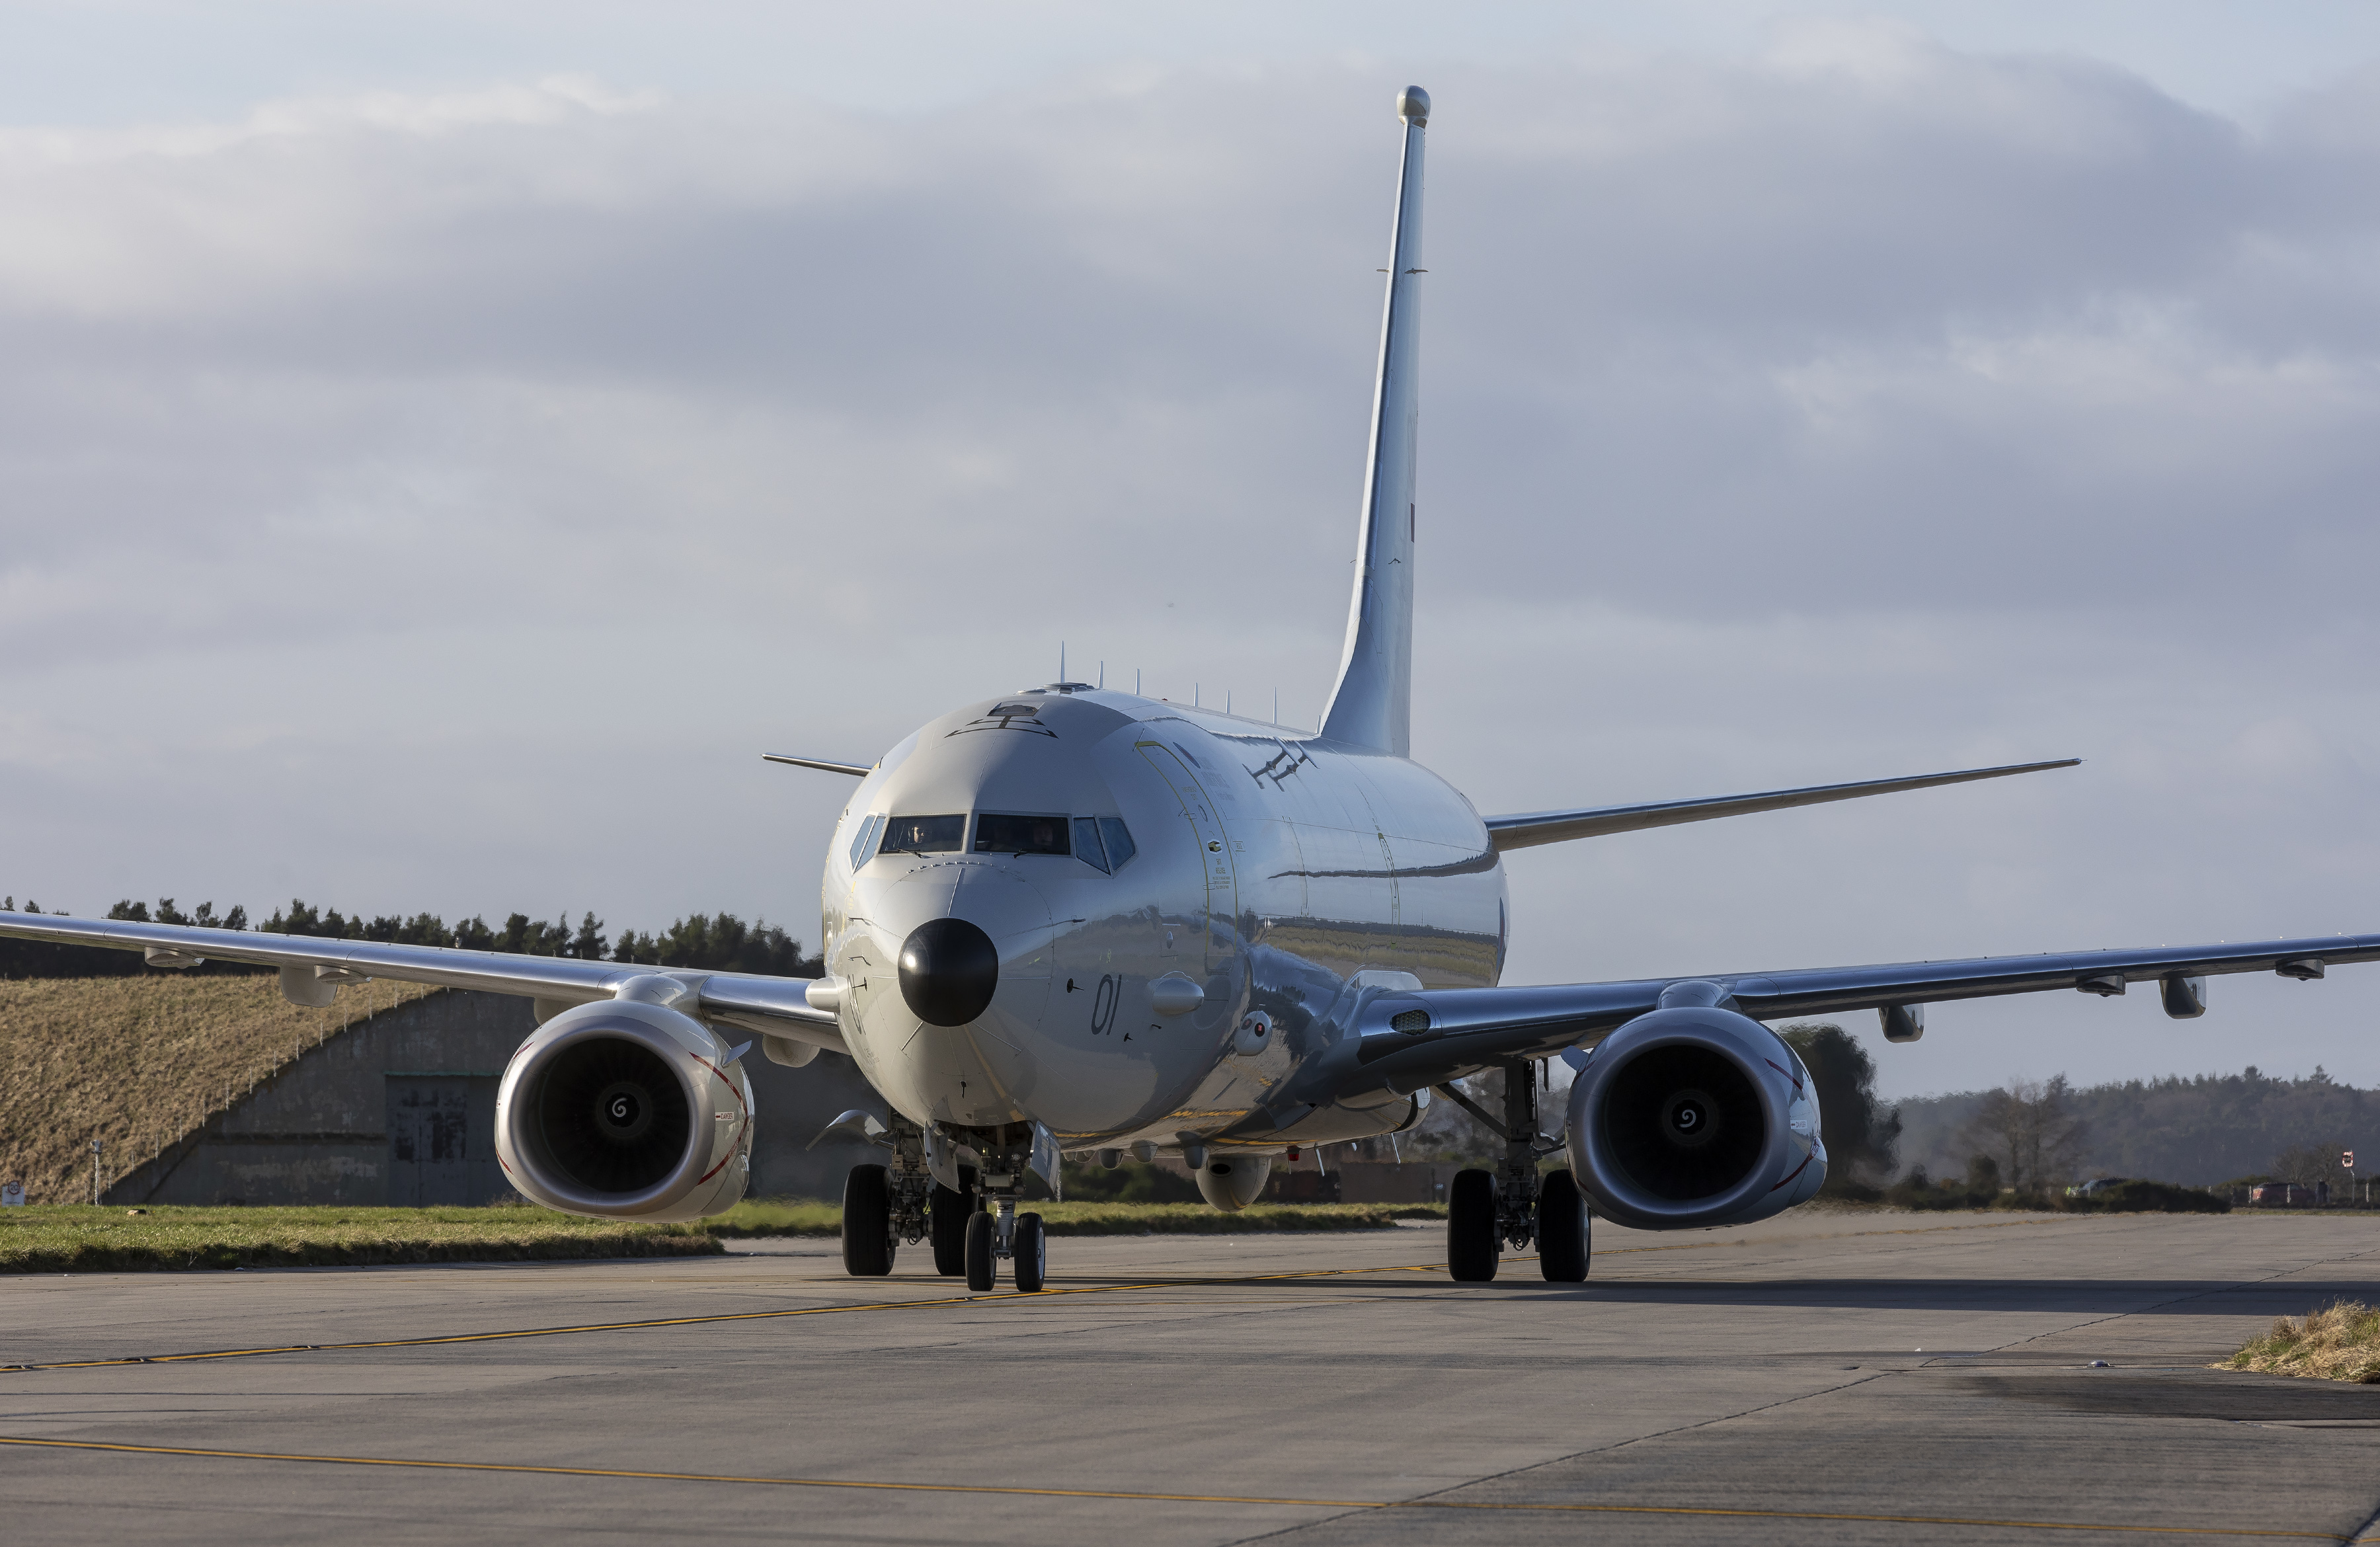 First Royal Air Force P-8 Poseidon MRA1 to Land in Scotland